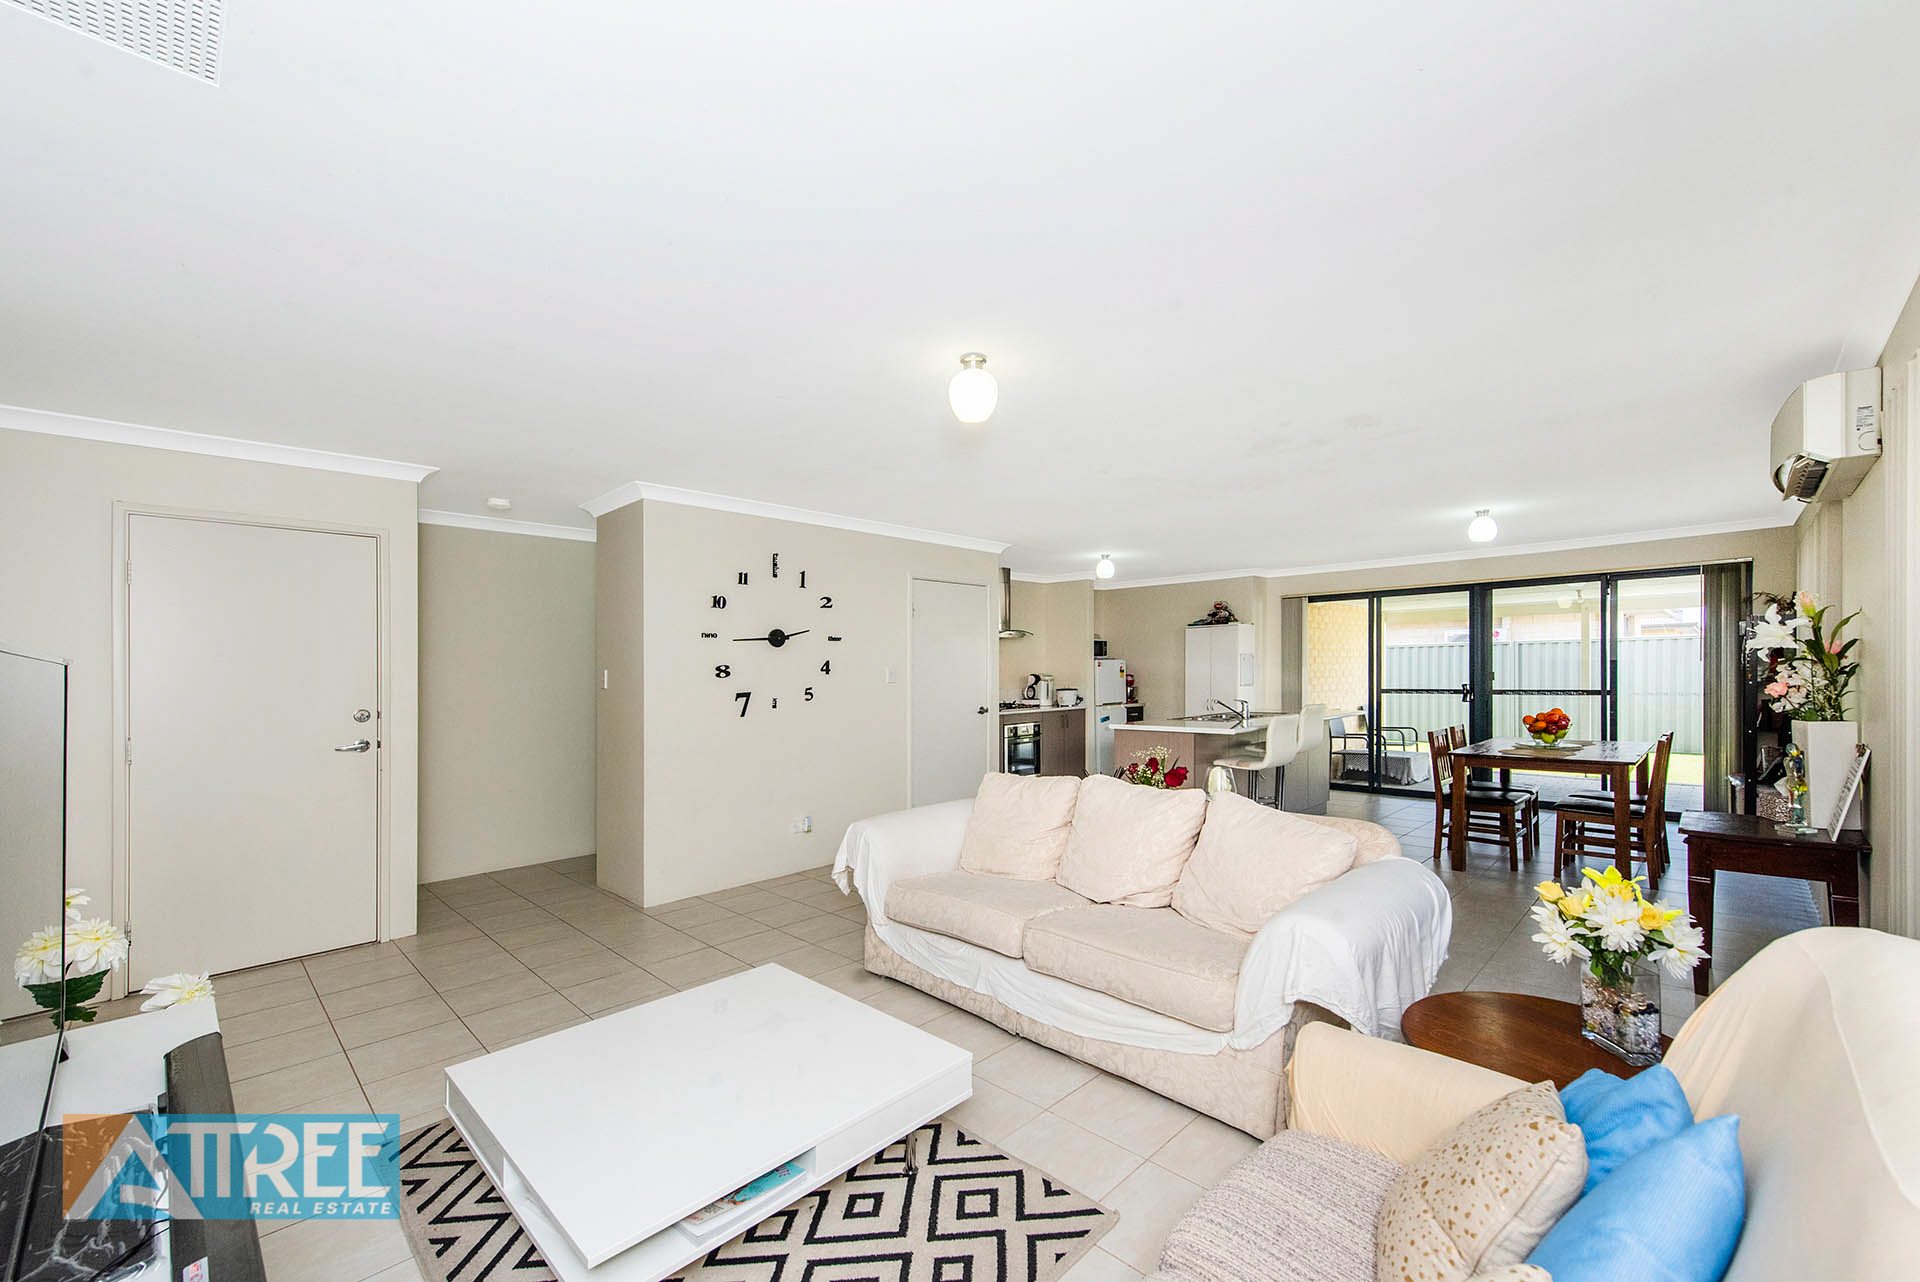 Property for sale in HARRISDALE, 13 Sheaf Way : Attree Real Estate